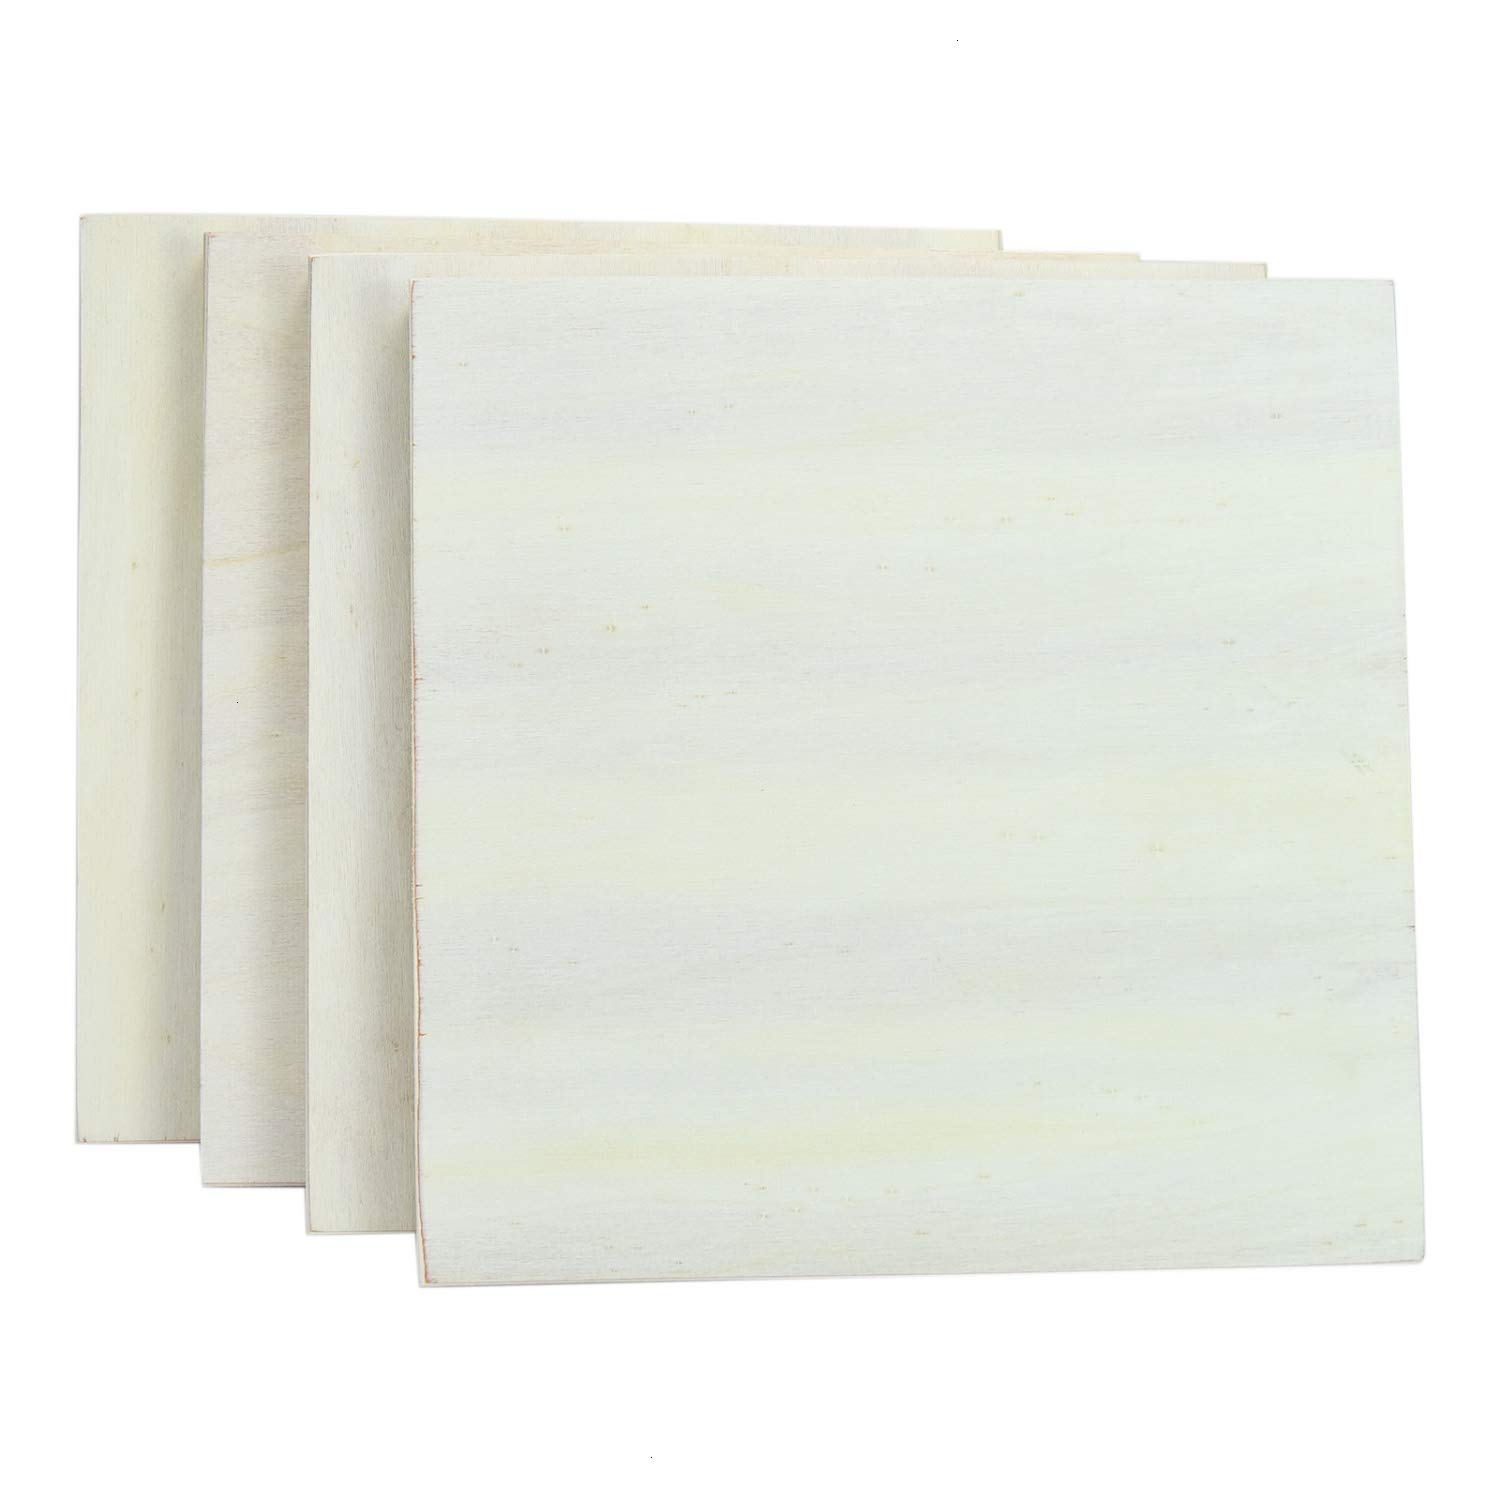 Wooden Canvas Panels YoleShy 4 Pcs 11.8 x 11.8 Unfinished Wood Cradled Painting Panel Boards for Arts /& Craft